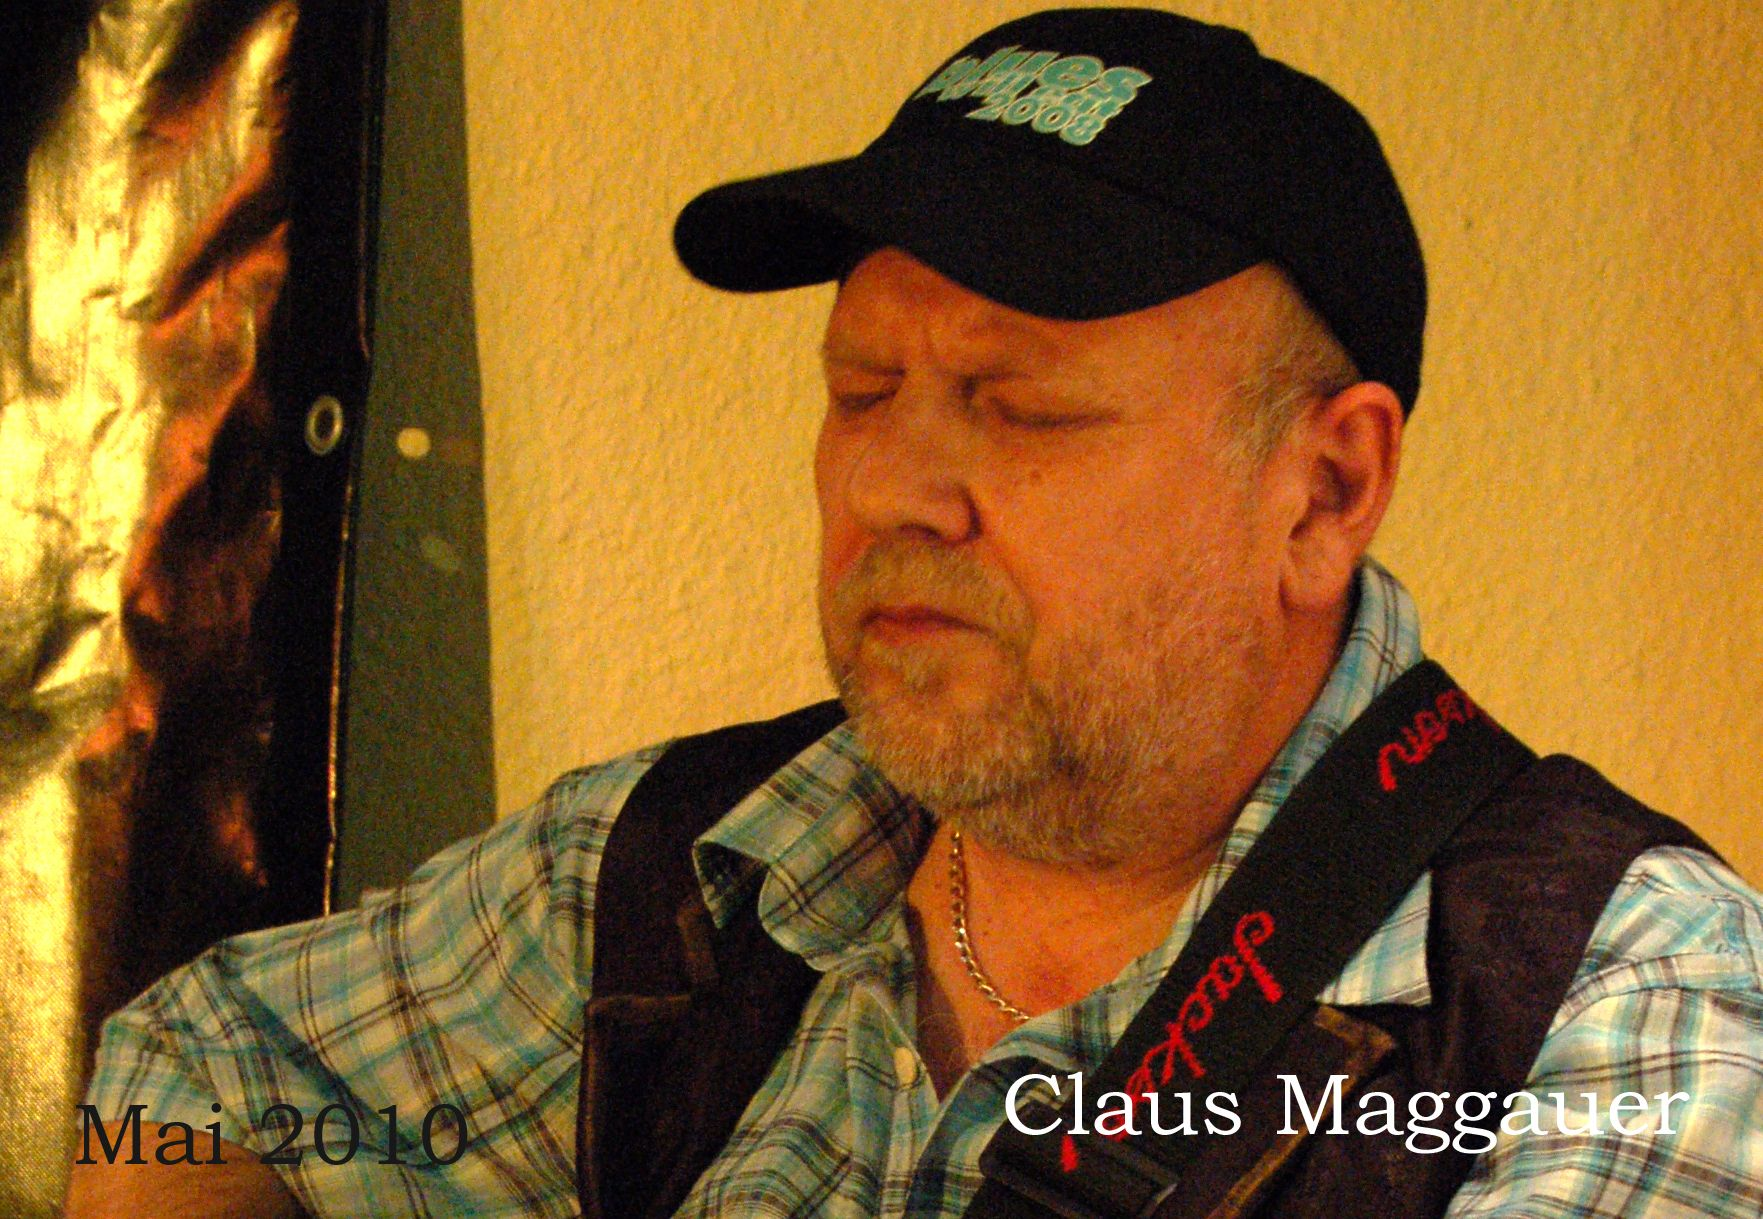 Claus Maggauer